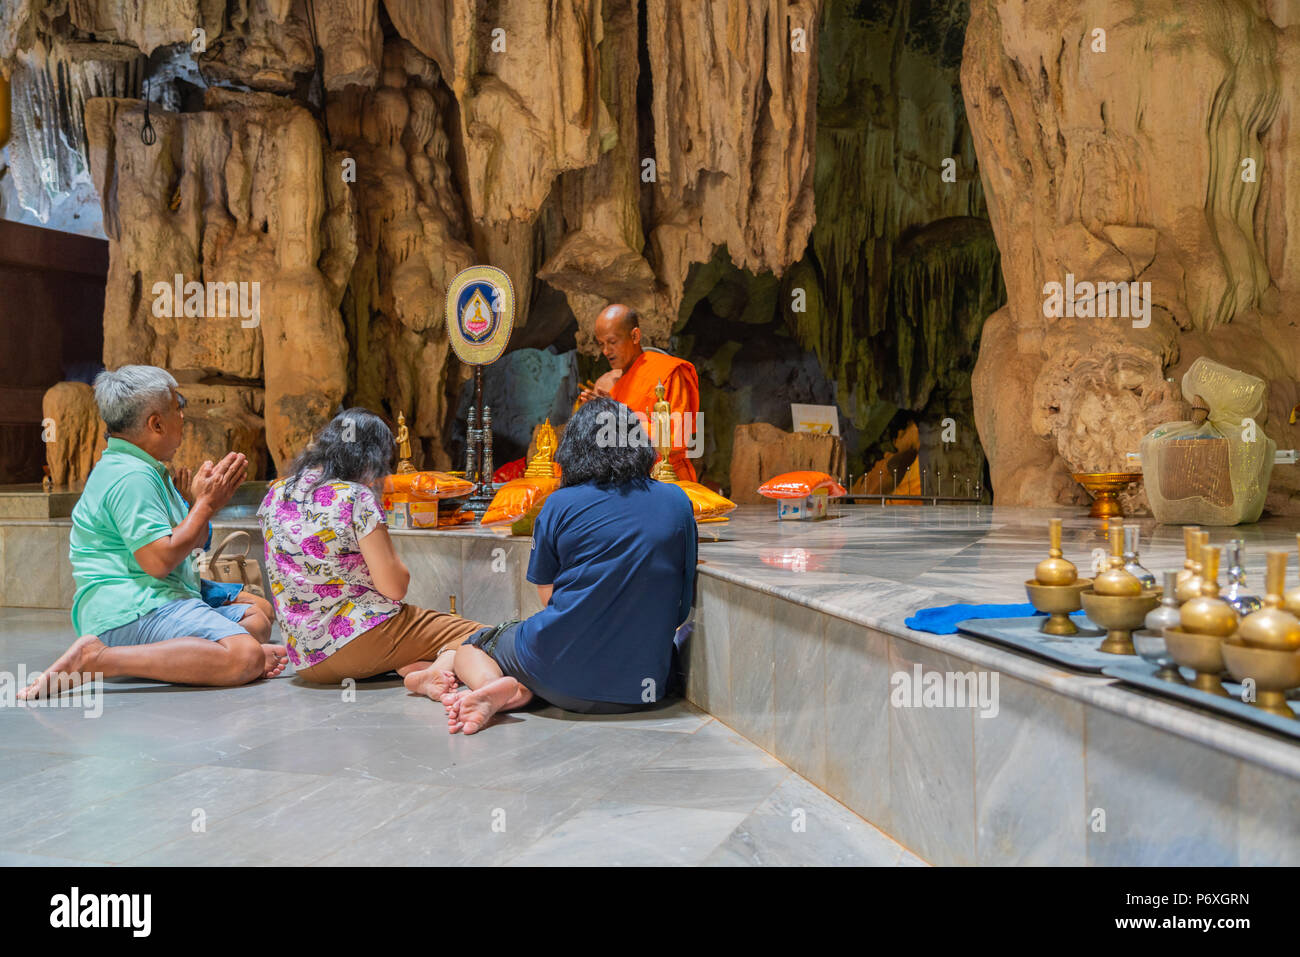 Kanchanaburi, Thailand - May 13, 2018: Group of people making merit by offering things to Buddhist monk in natural cave in Kanchanaburi, Thailand - Stock Image